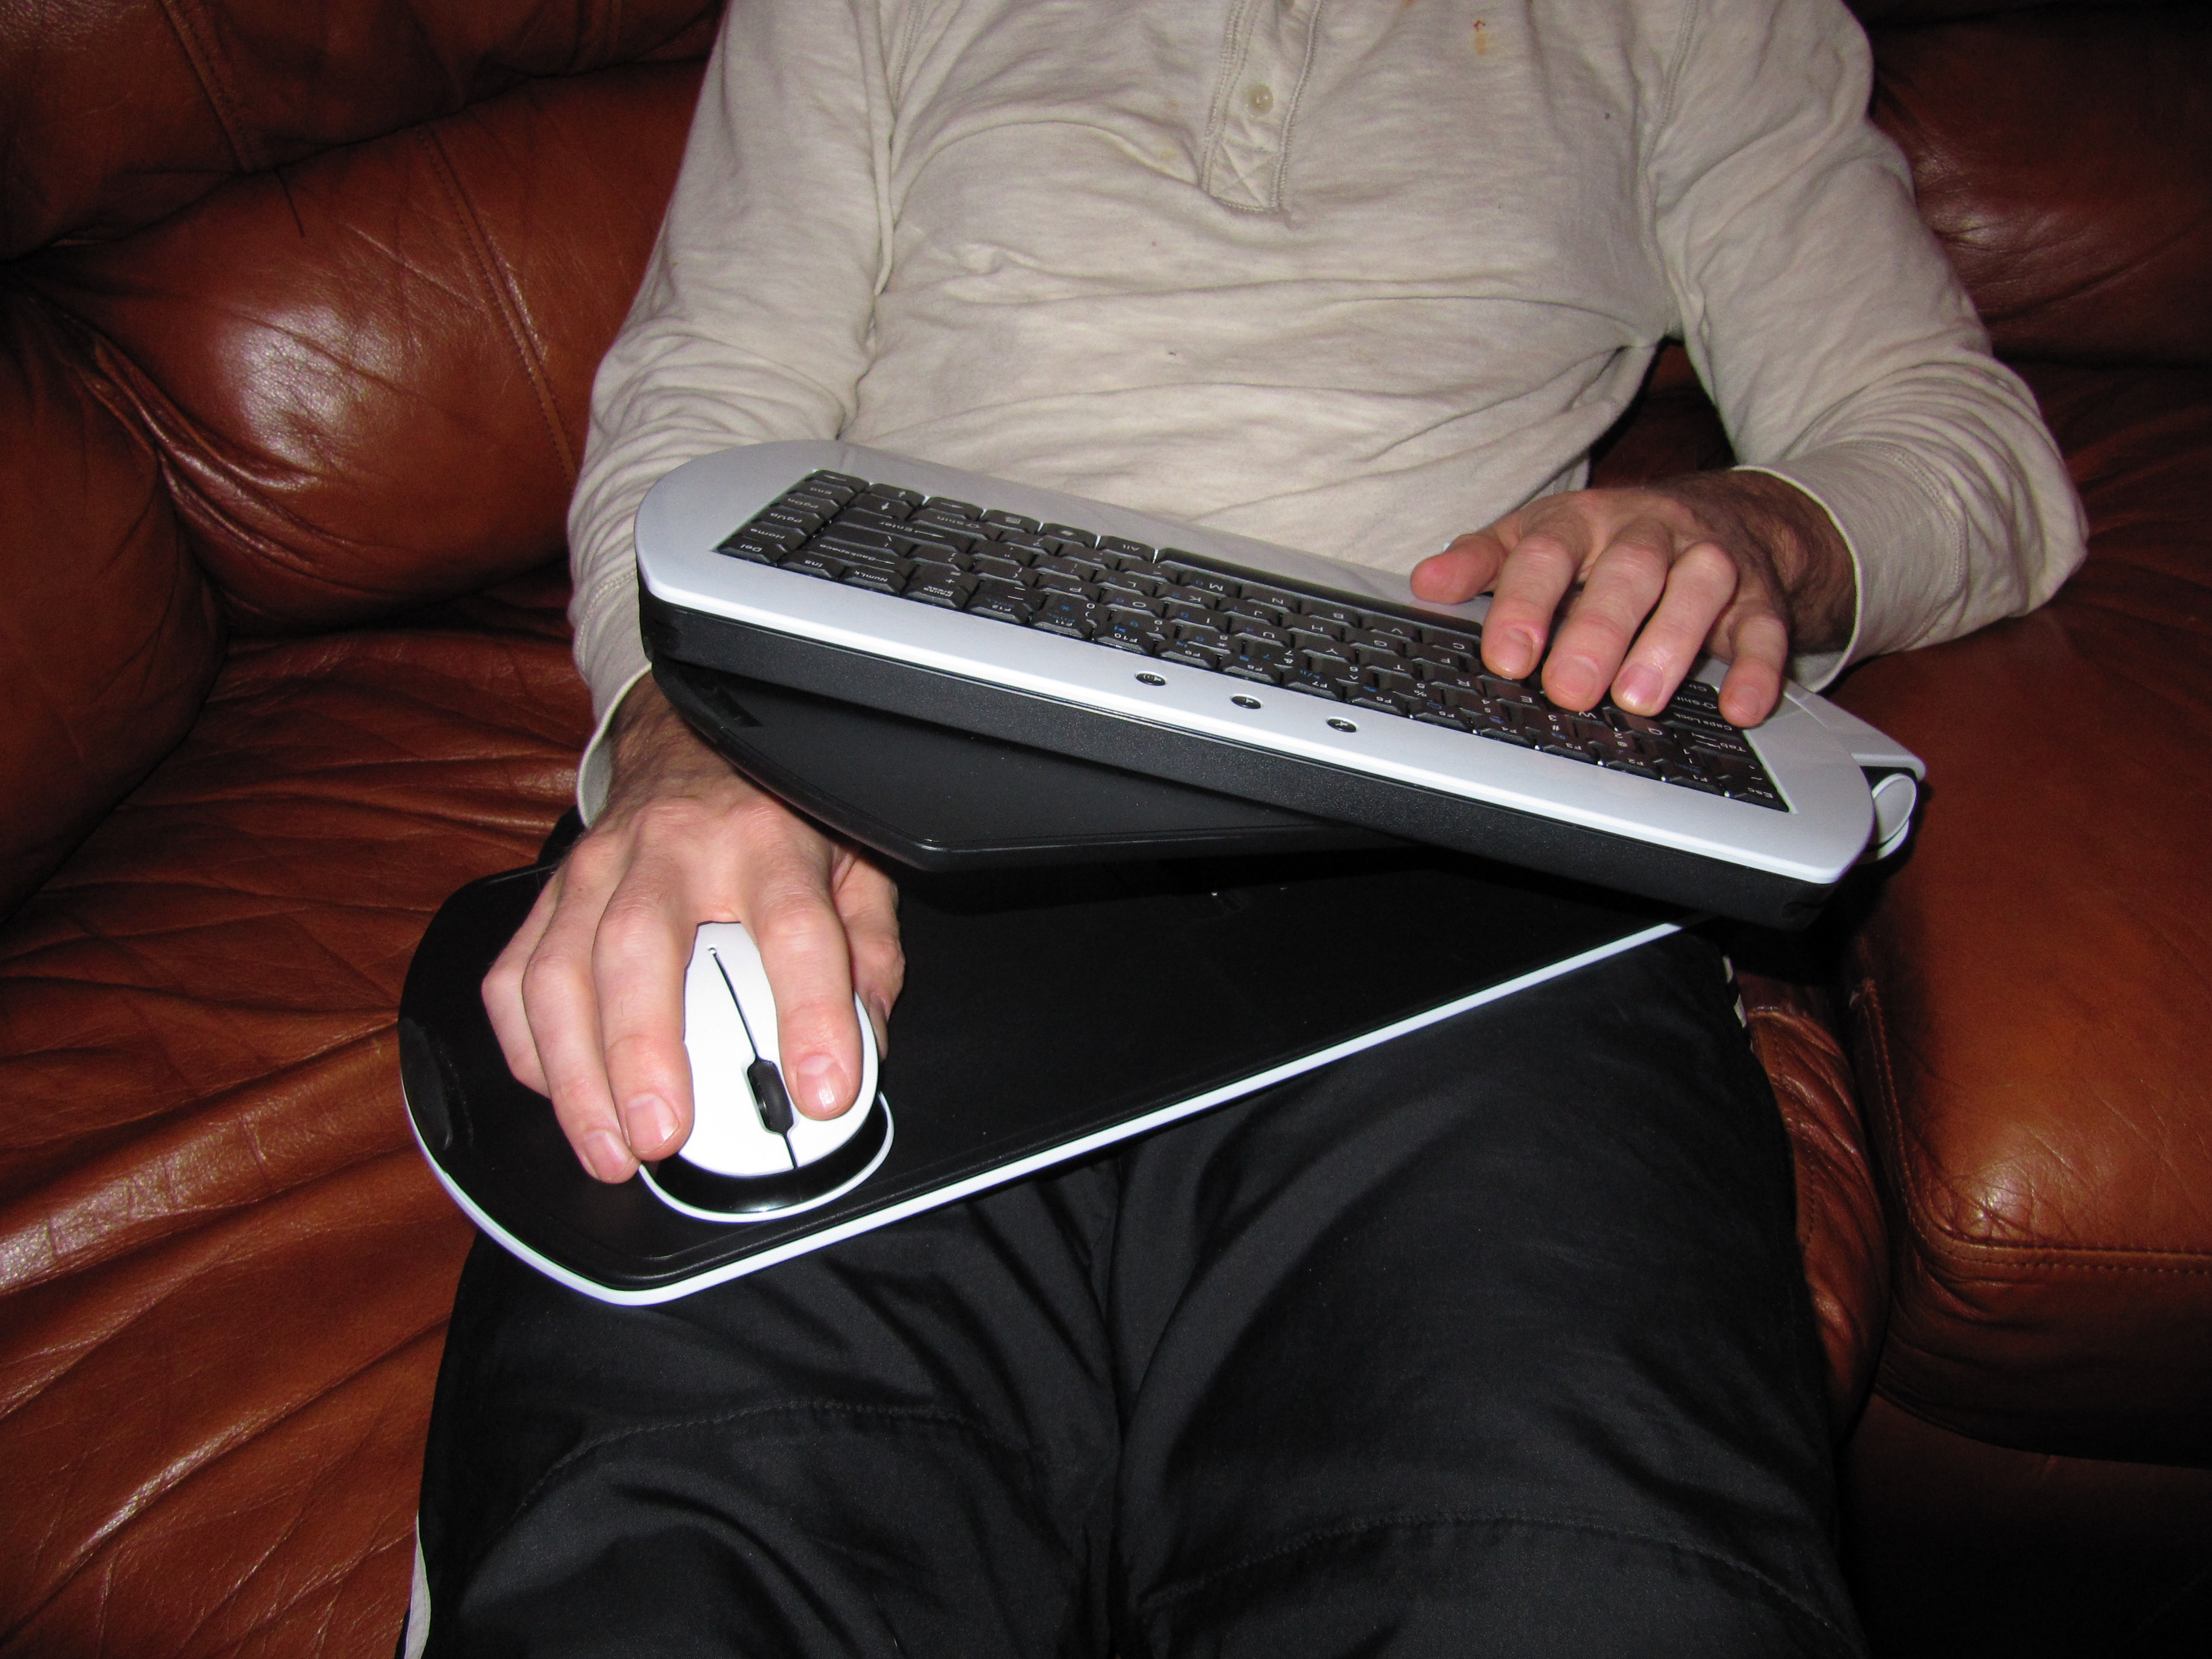 Couch gaming with the onlive microconsole the phantom lapboard